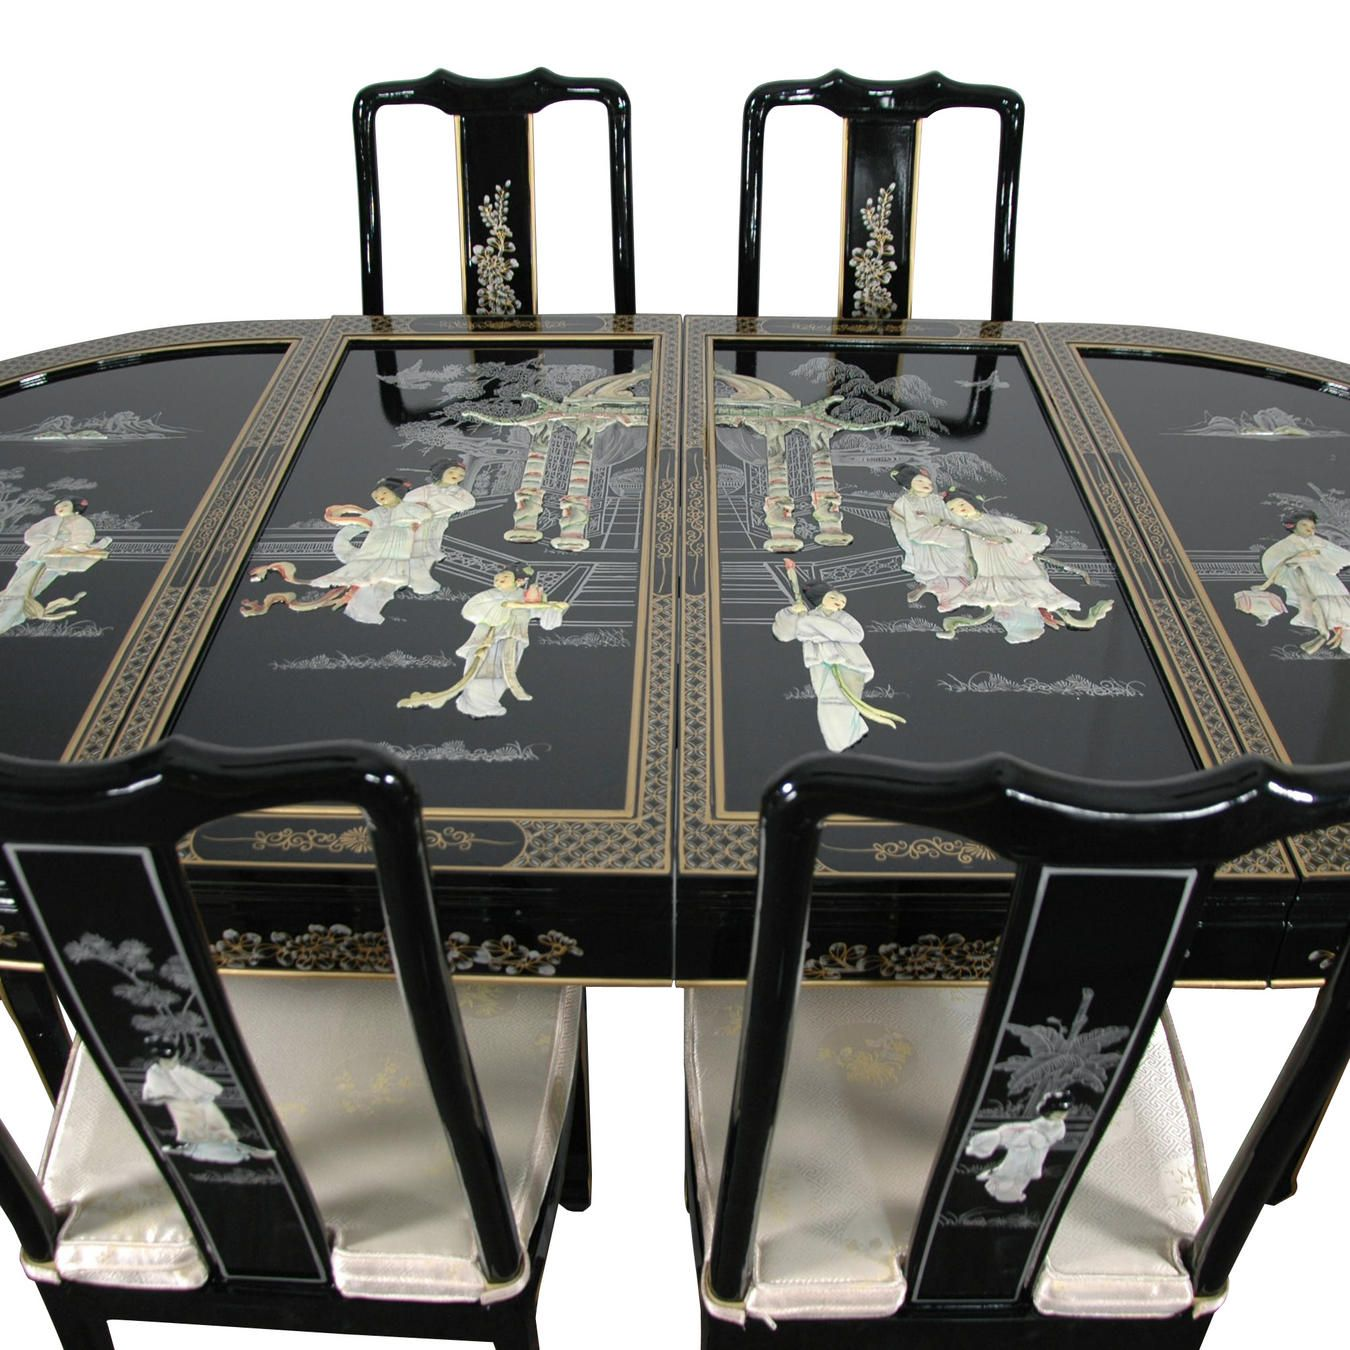 Lacquer Dining Room Set Black Mother Of Pearl Orientalfurniture Com Dining Room Set Dining Room Furniture Oriental Furniture